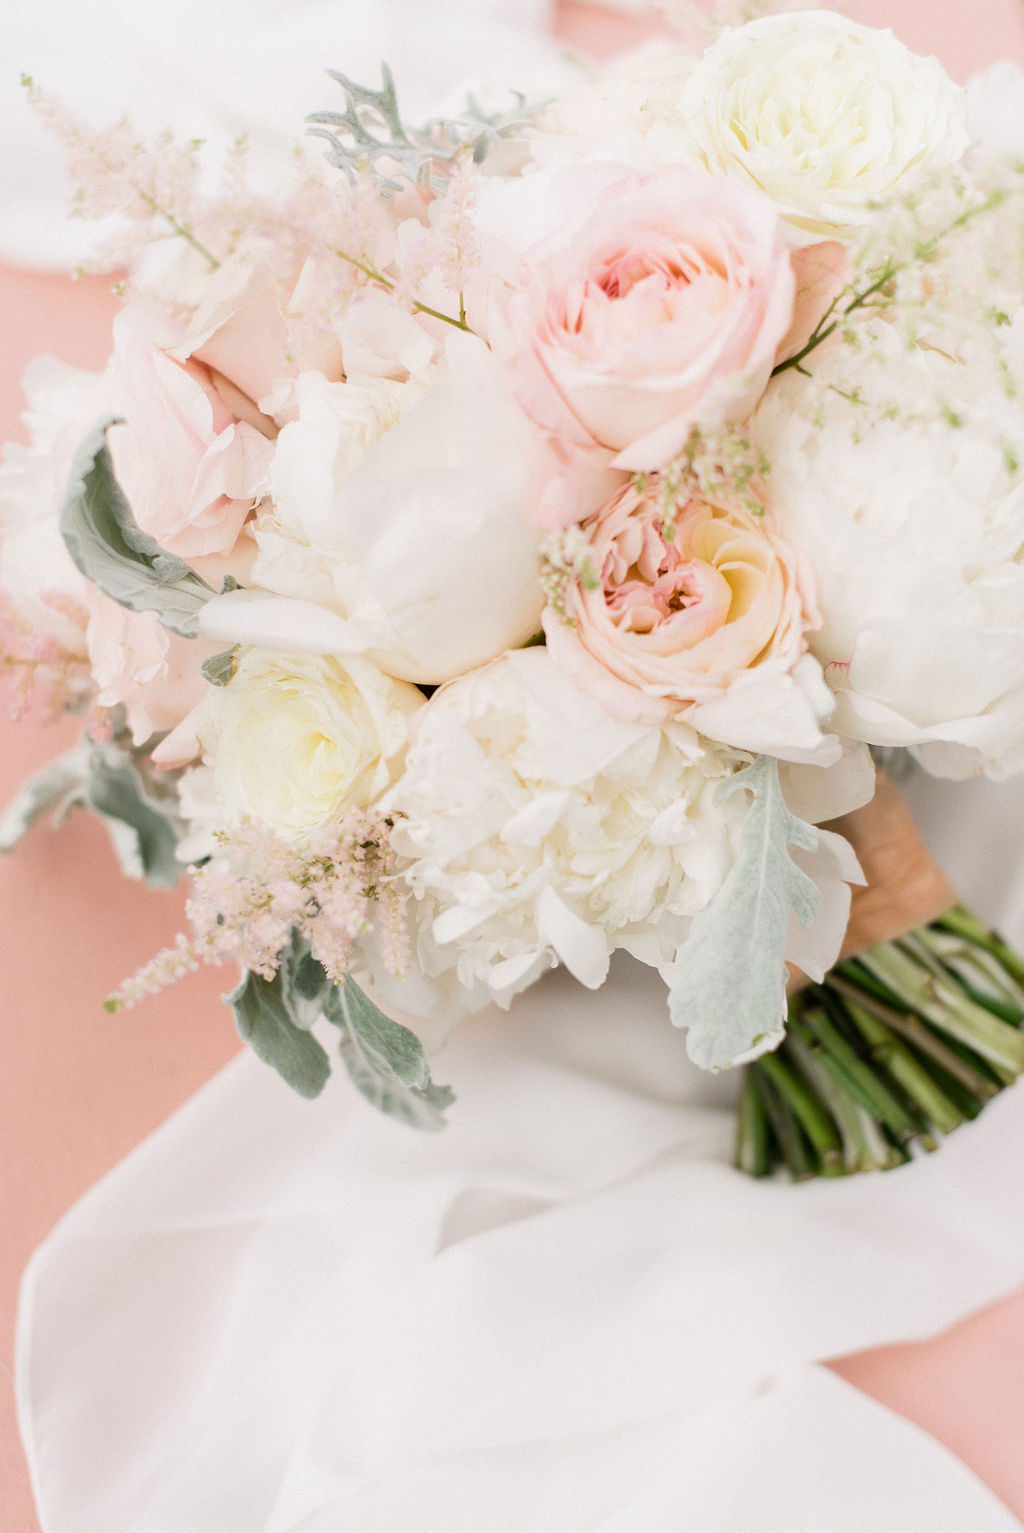 light colored rose bouquet with evenly cut stems